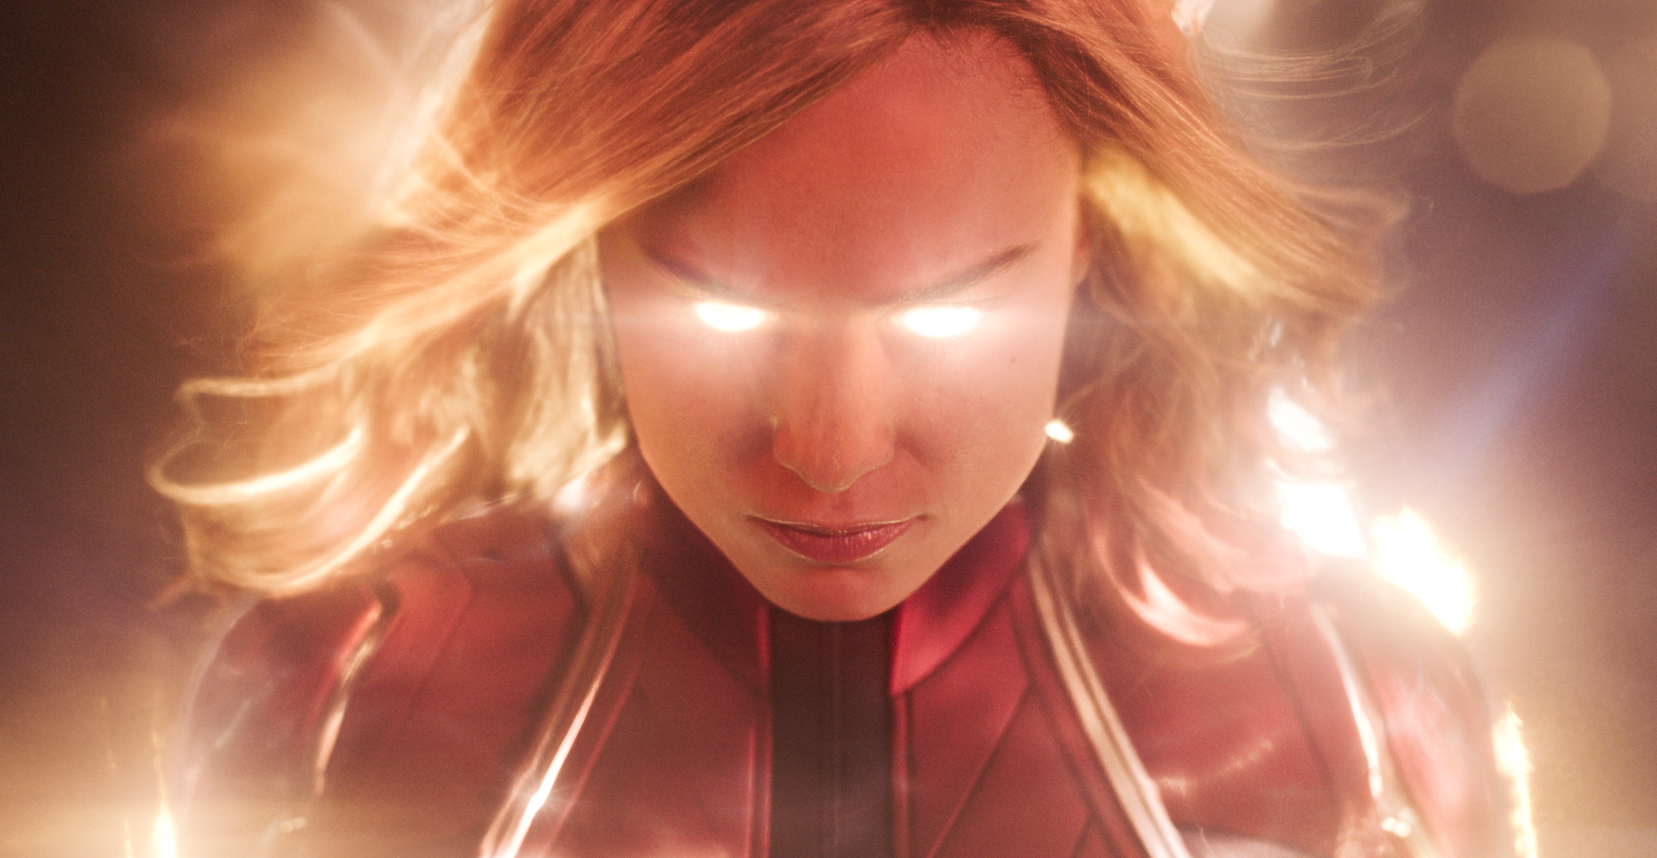 Captain Marvel: The Superhero We Need Right Now